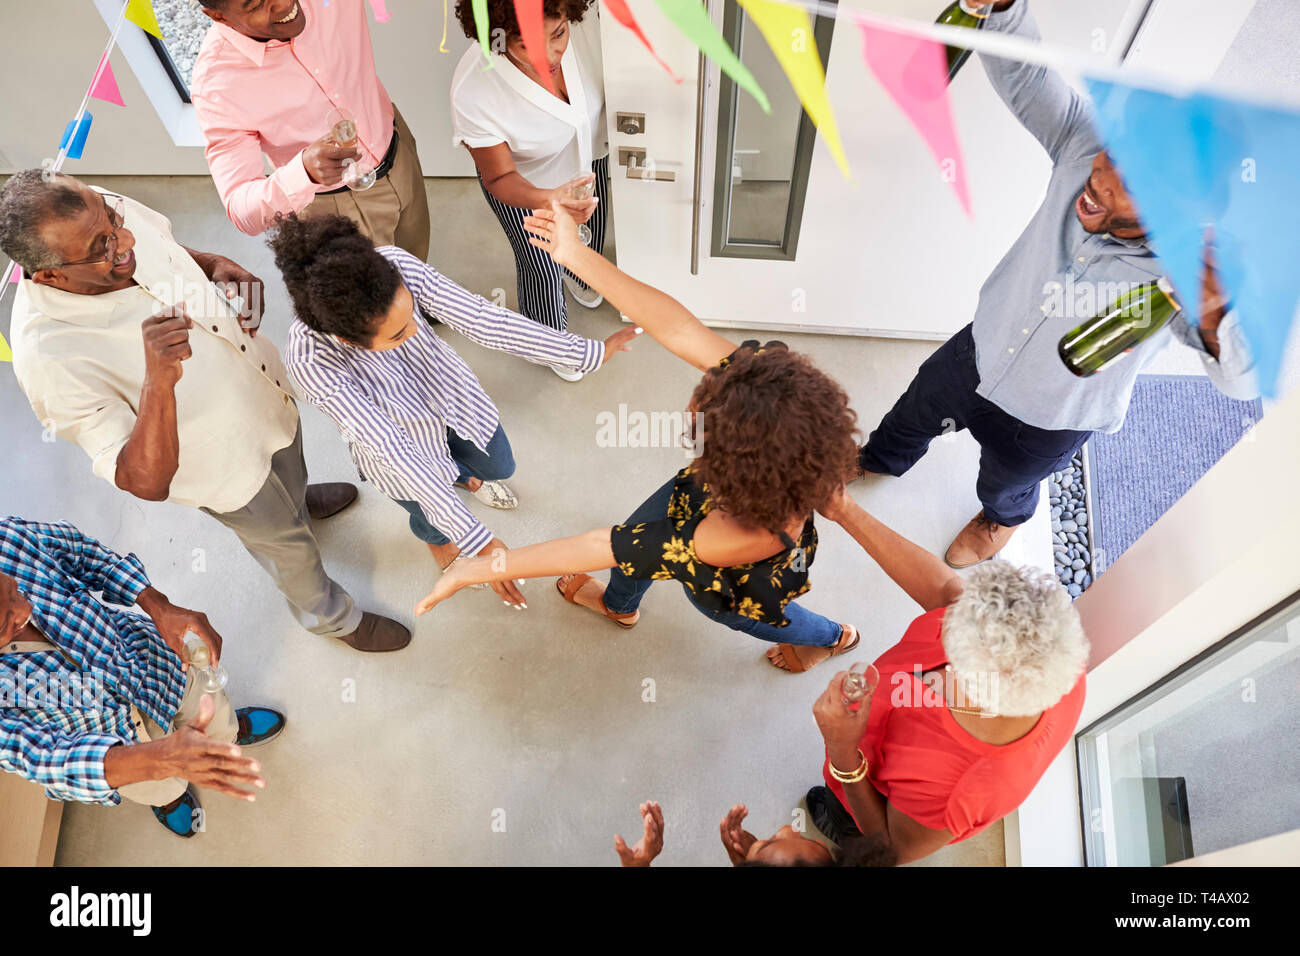 Three generation family throwing a surprise party welcoming guests at the front door,overhead view - Stock Image